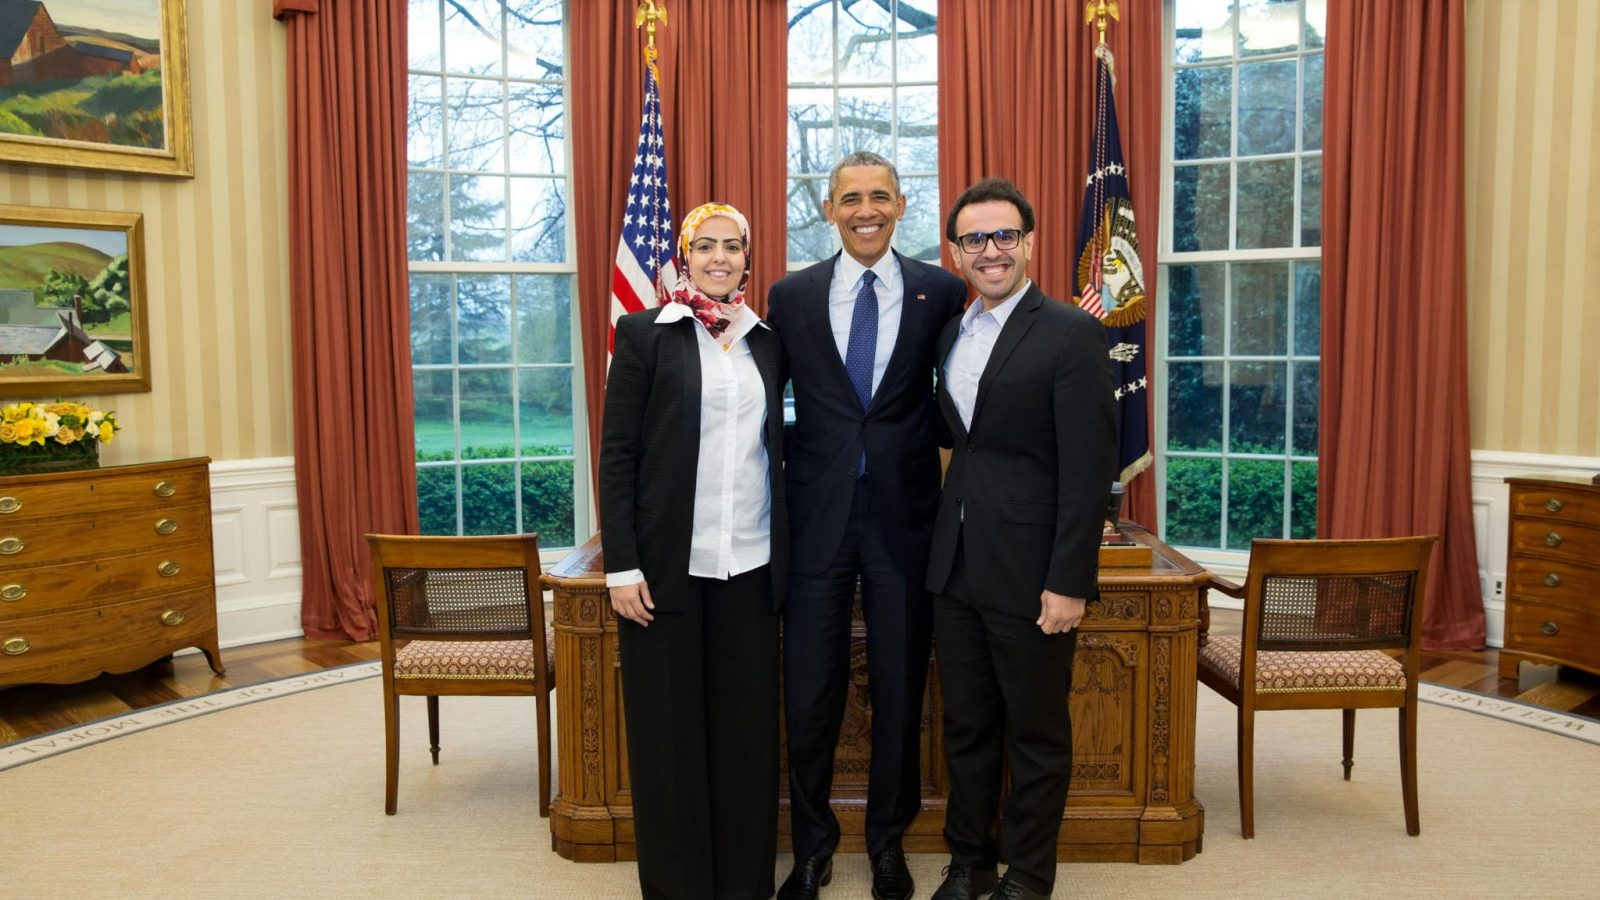 Soltan (right) with President Obama in the Oval Office